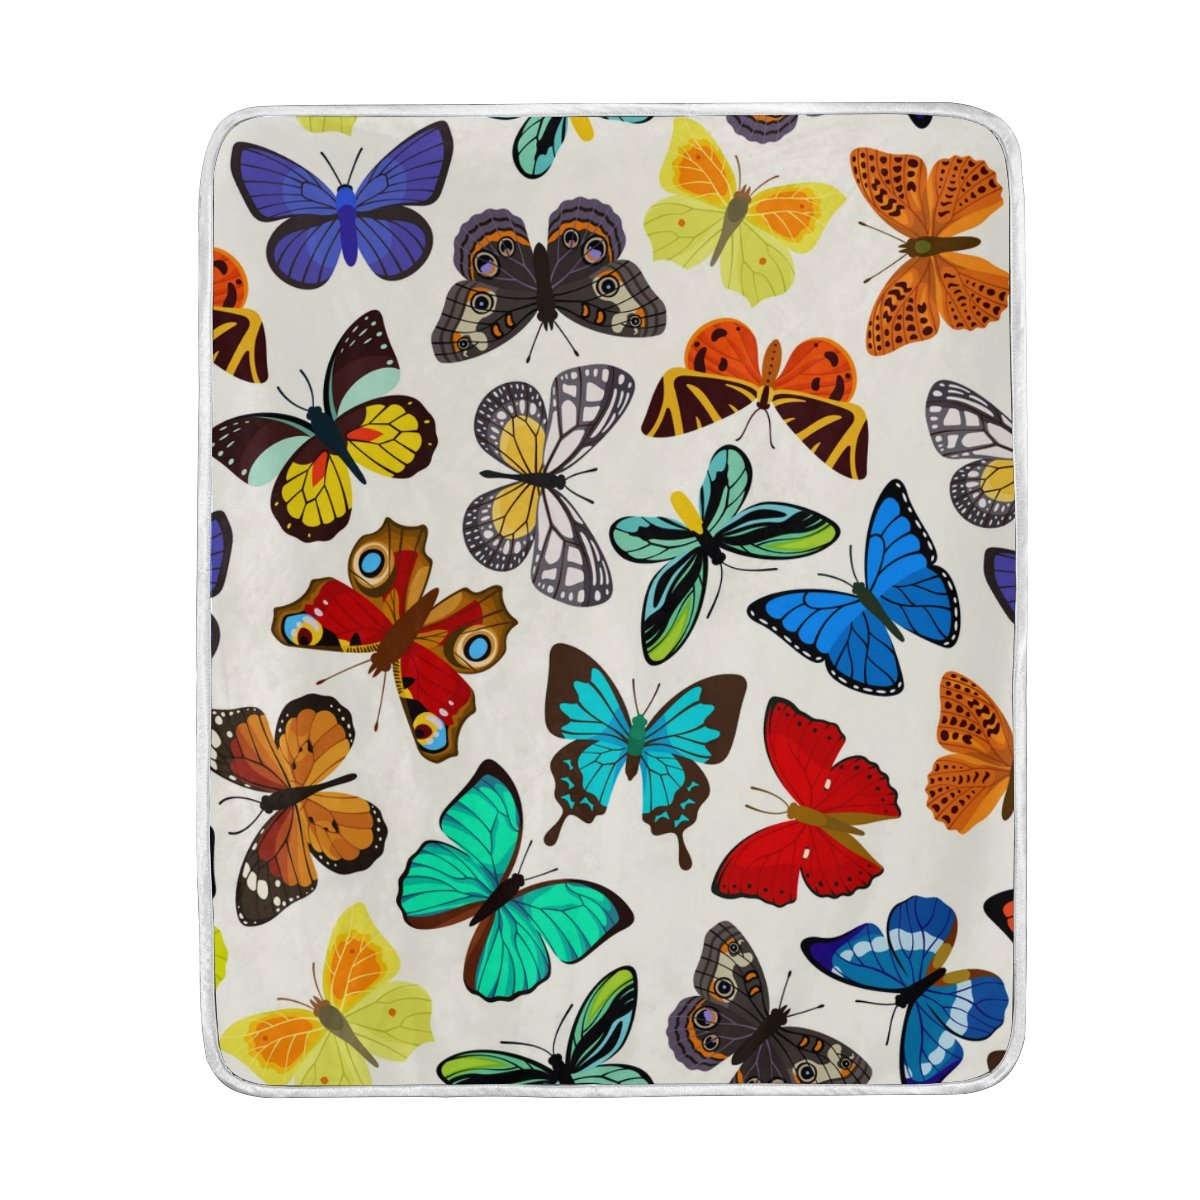 My Little Nest Warm Throw Blanket Mix Colorful Butterfly Lightweight Microfiber Soft Blanket Everyday Use for Bed Couch Sofa 50'' x 60''